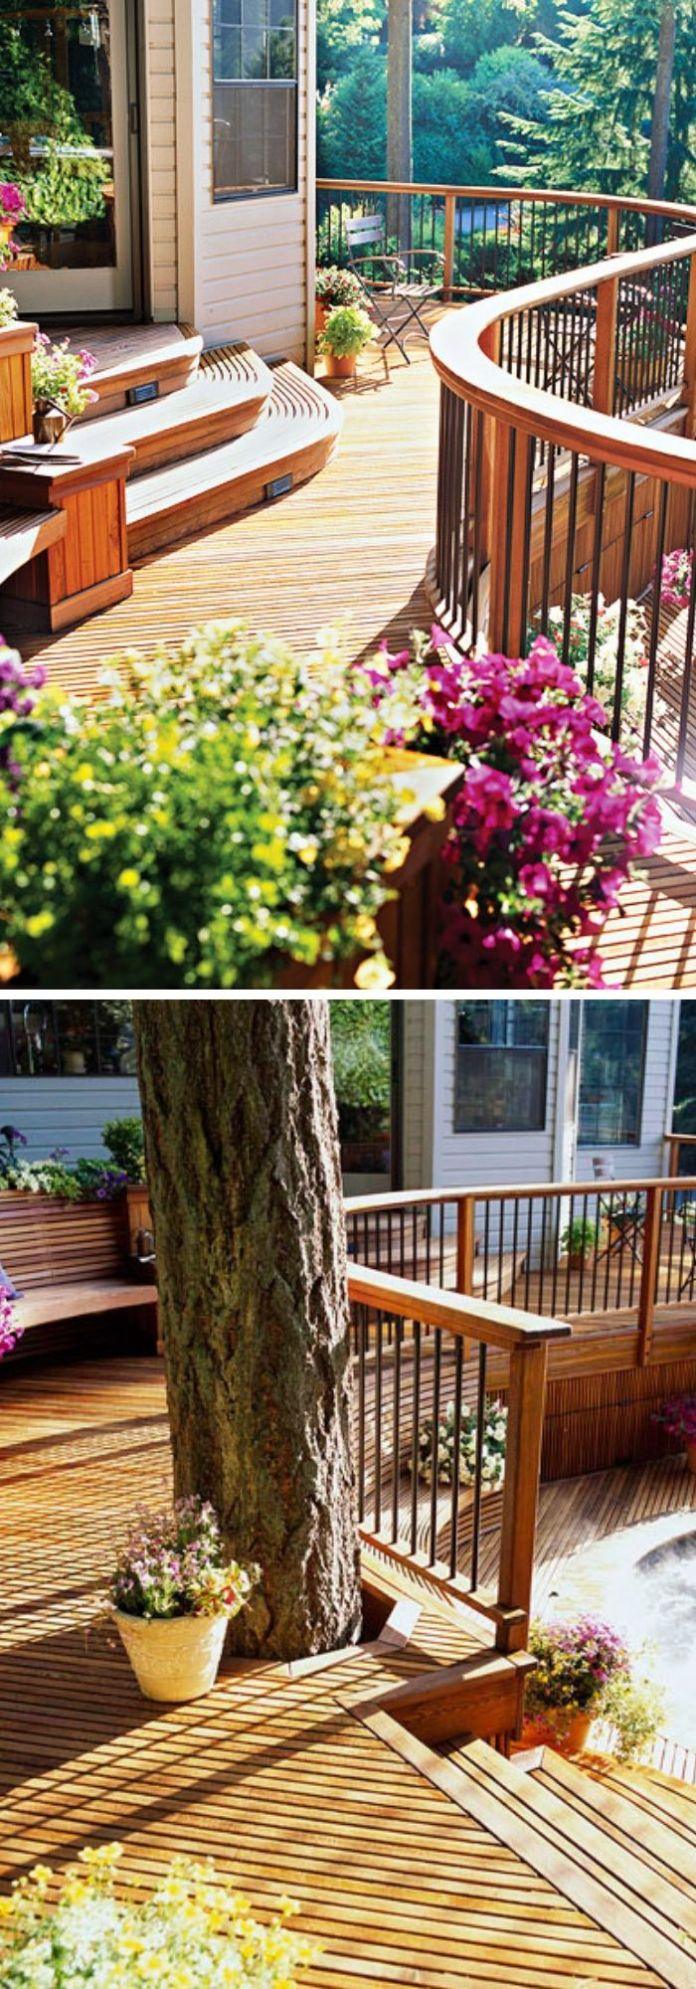 Multilevel Deck with Graceful Curves